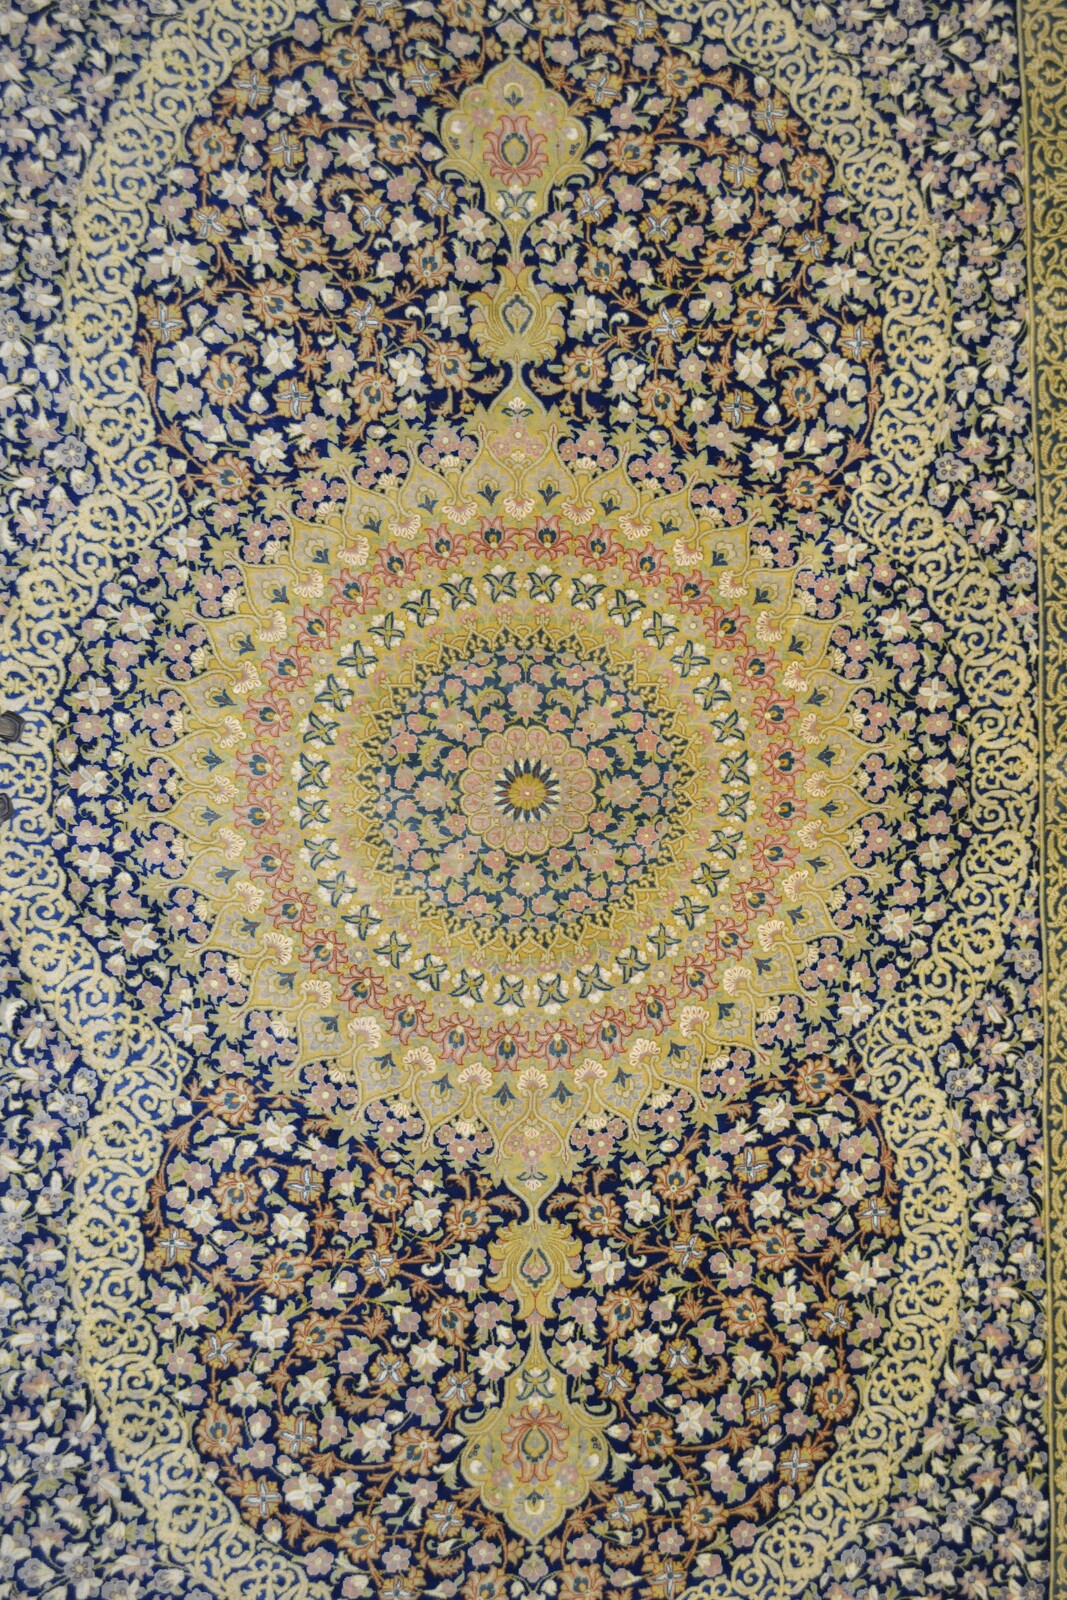 Master Piece 1000 KPSI Qum Pure Silk Persian Area Rug 5x7 by Samadi (5)